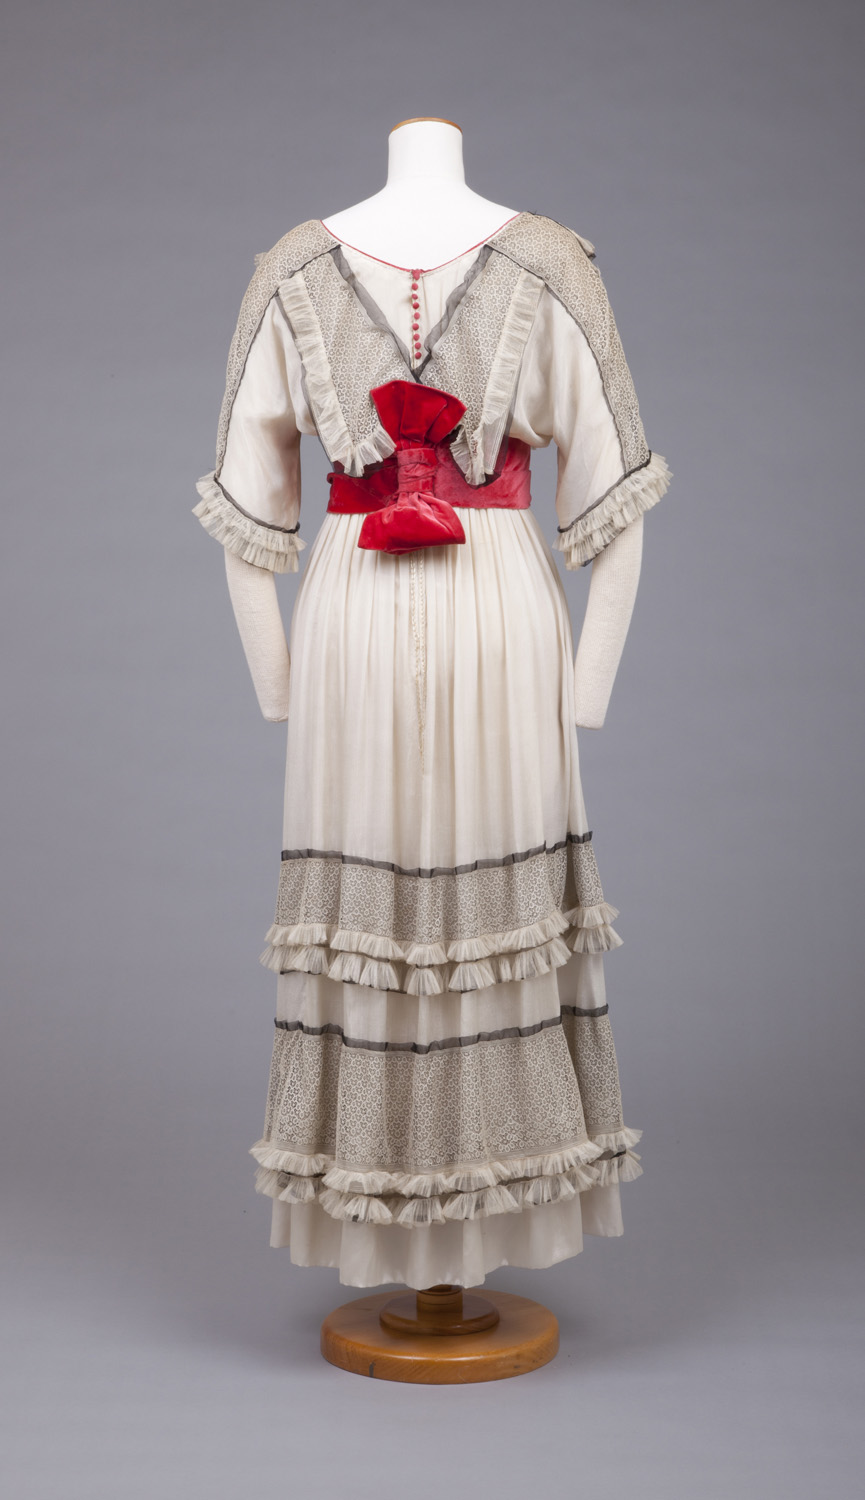 White Crepe De Chine Afternoon Dress With Rose Velvet Waist Girdle, 1910-1915, Goldstein Museum of Design, 1977.031.004